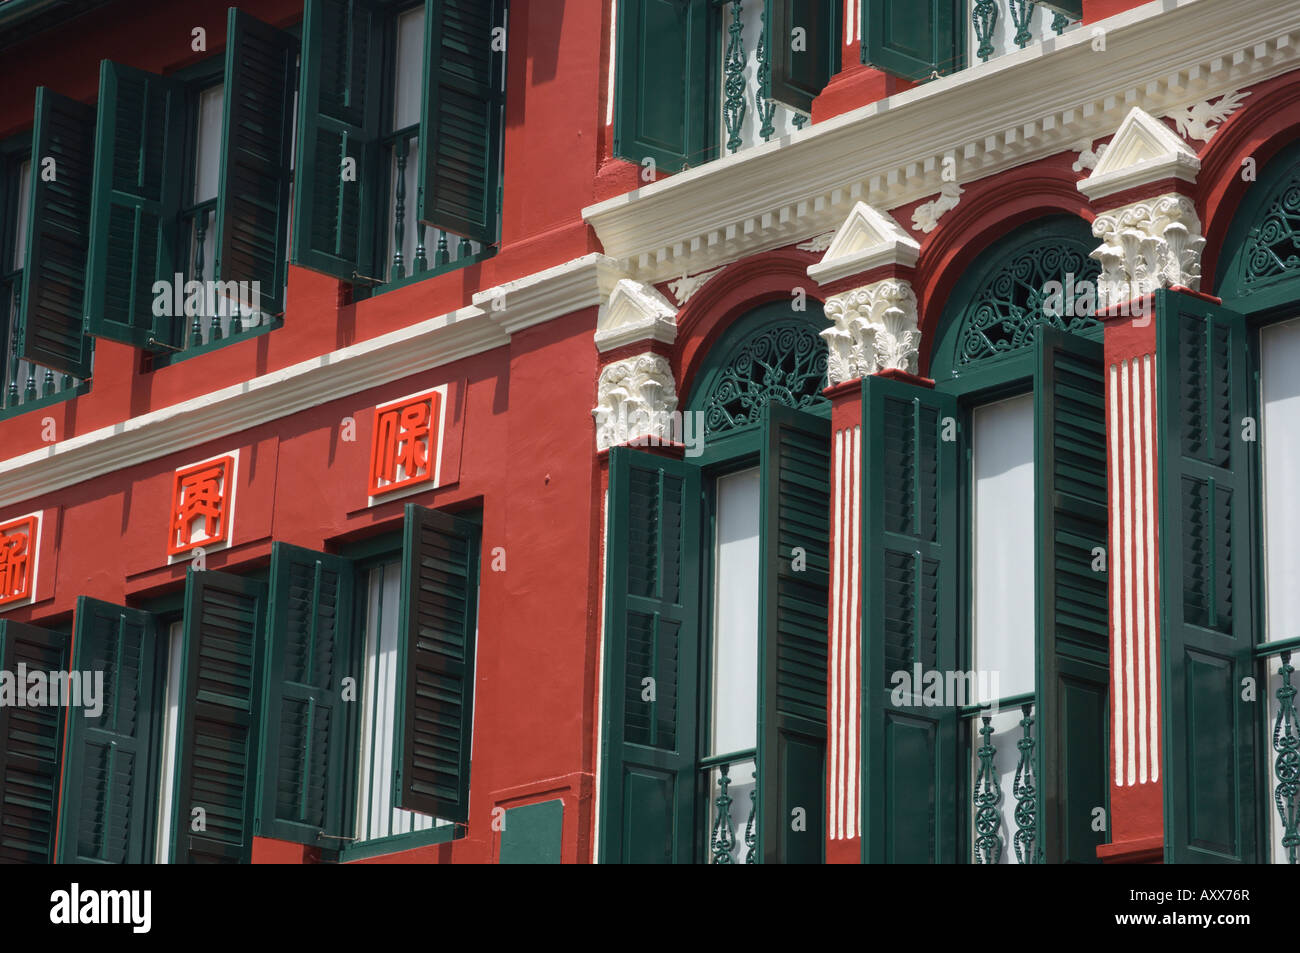 Windows and shutters in Amoy Street, Chinatown, Singapore, South East Asia - Stock Image